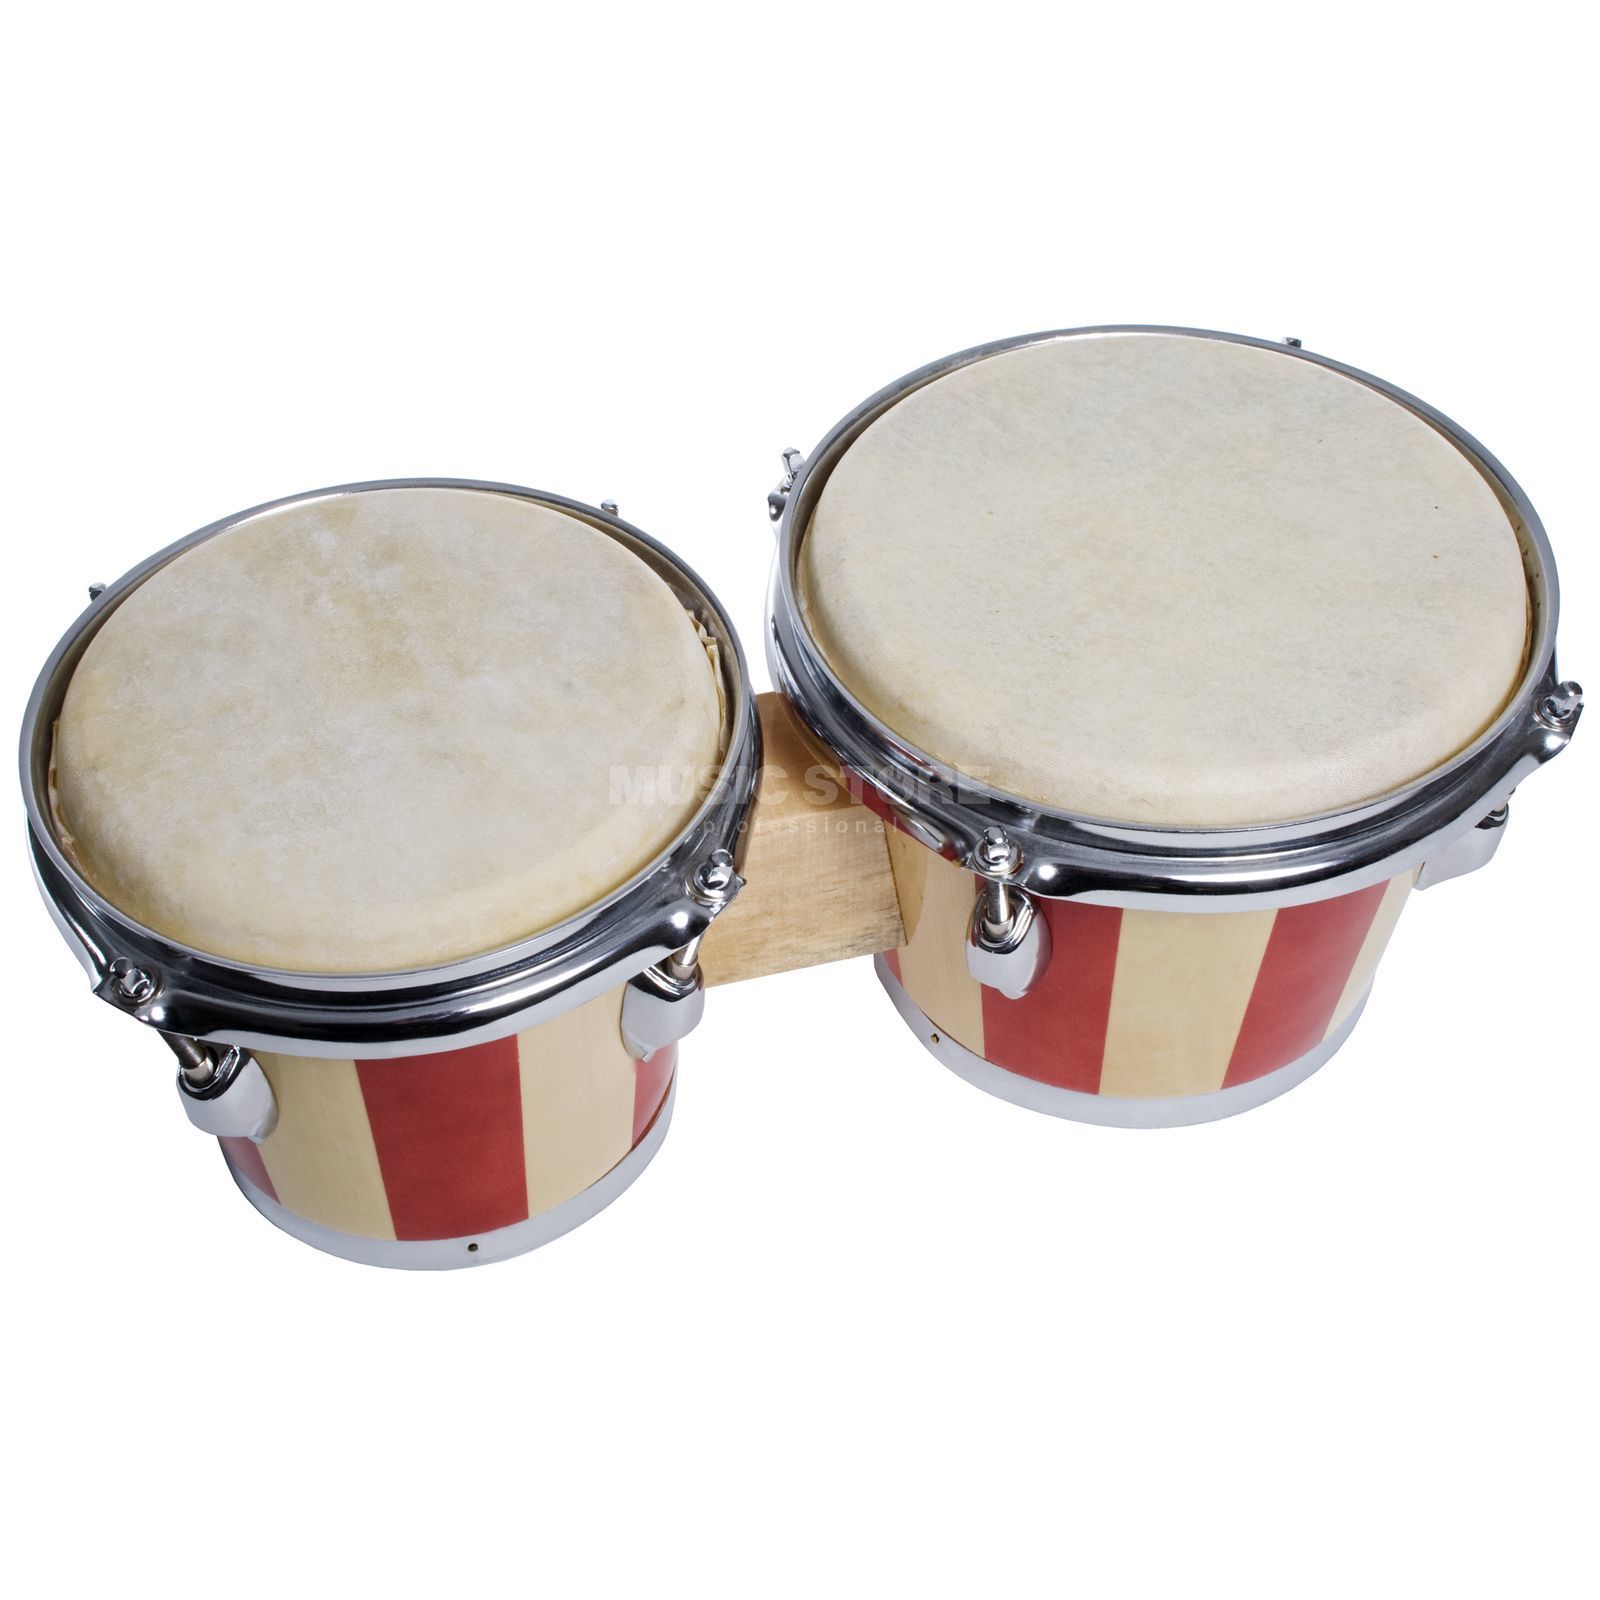 "Fame DB-105 Bongos 7"" + 8"", Natural + Red Stripes Produktbild"